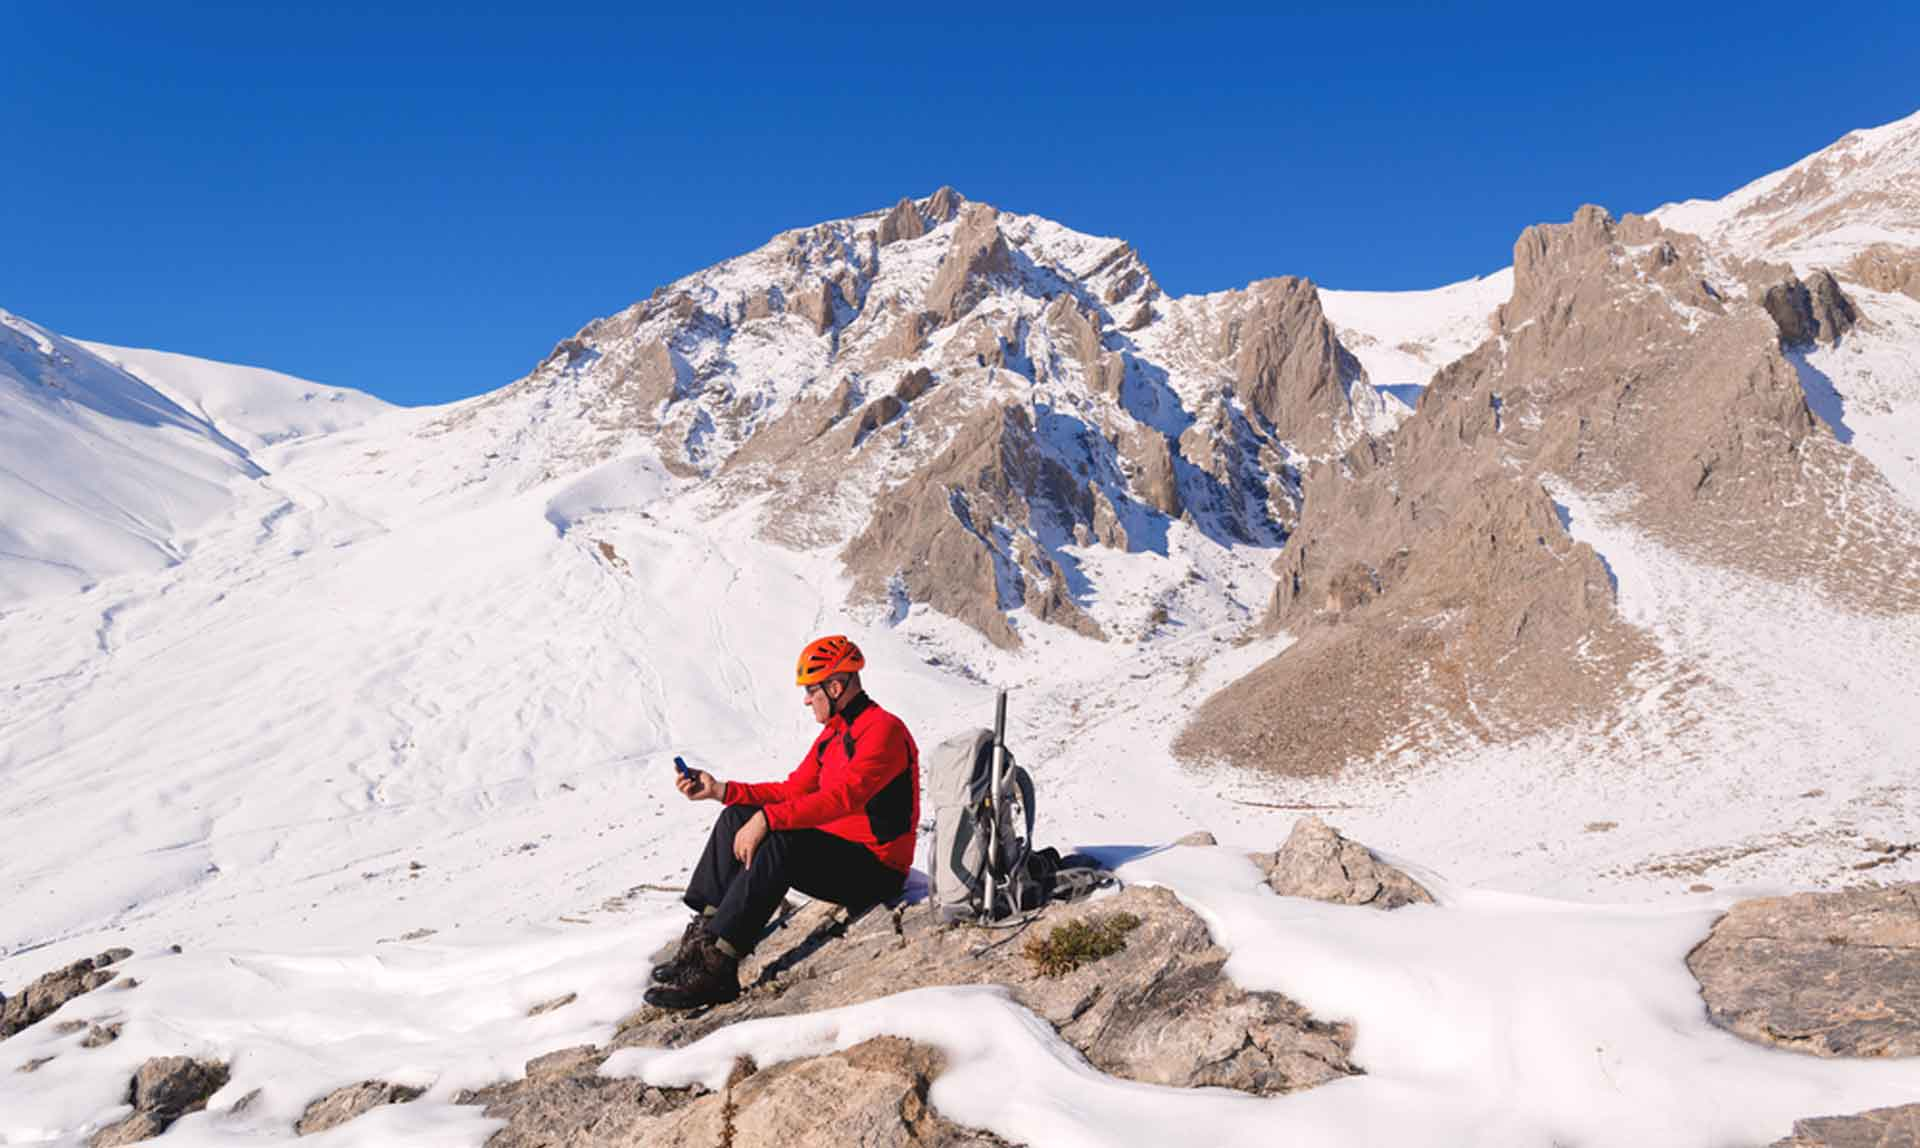 man sat on a snowy mountain placing an order using his phone